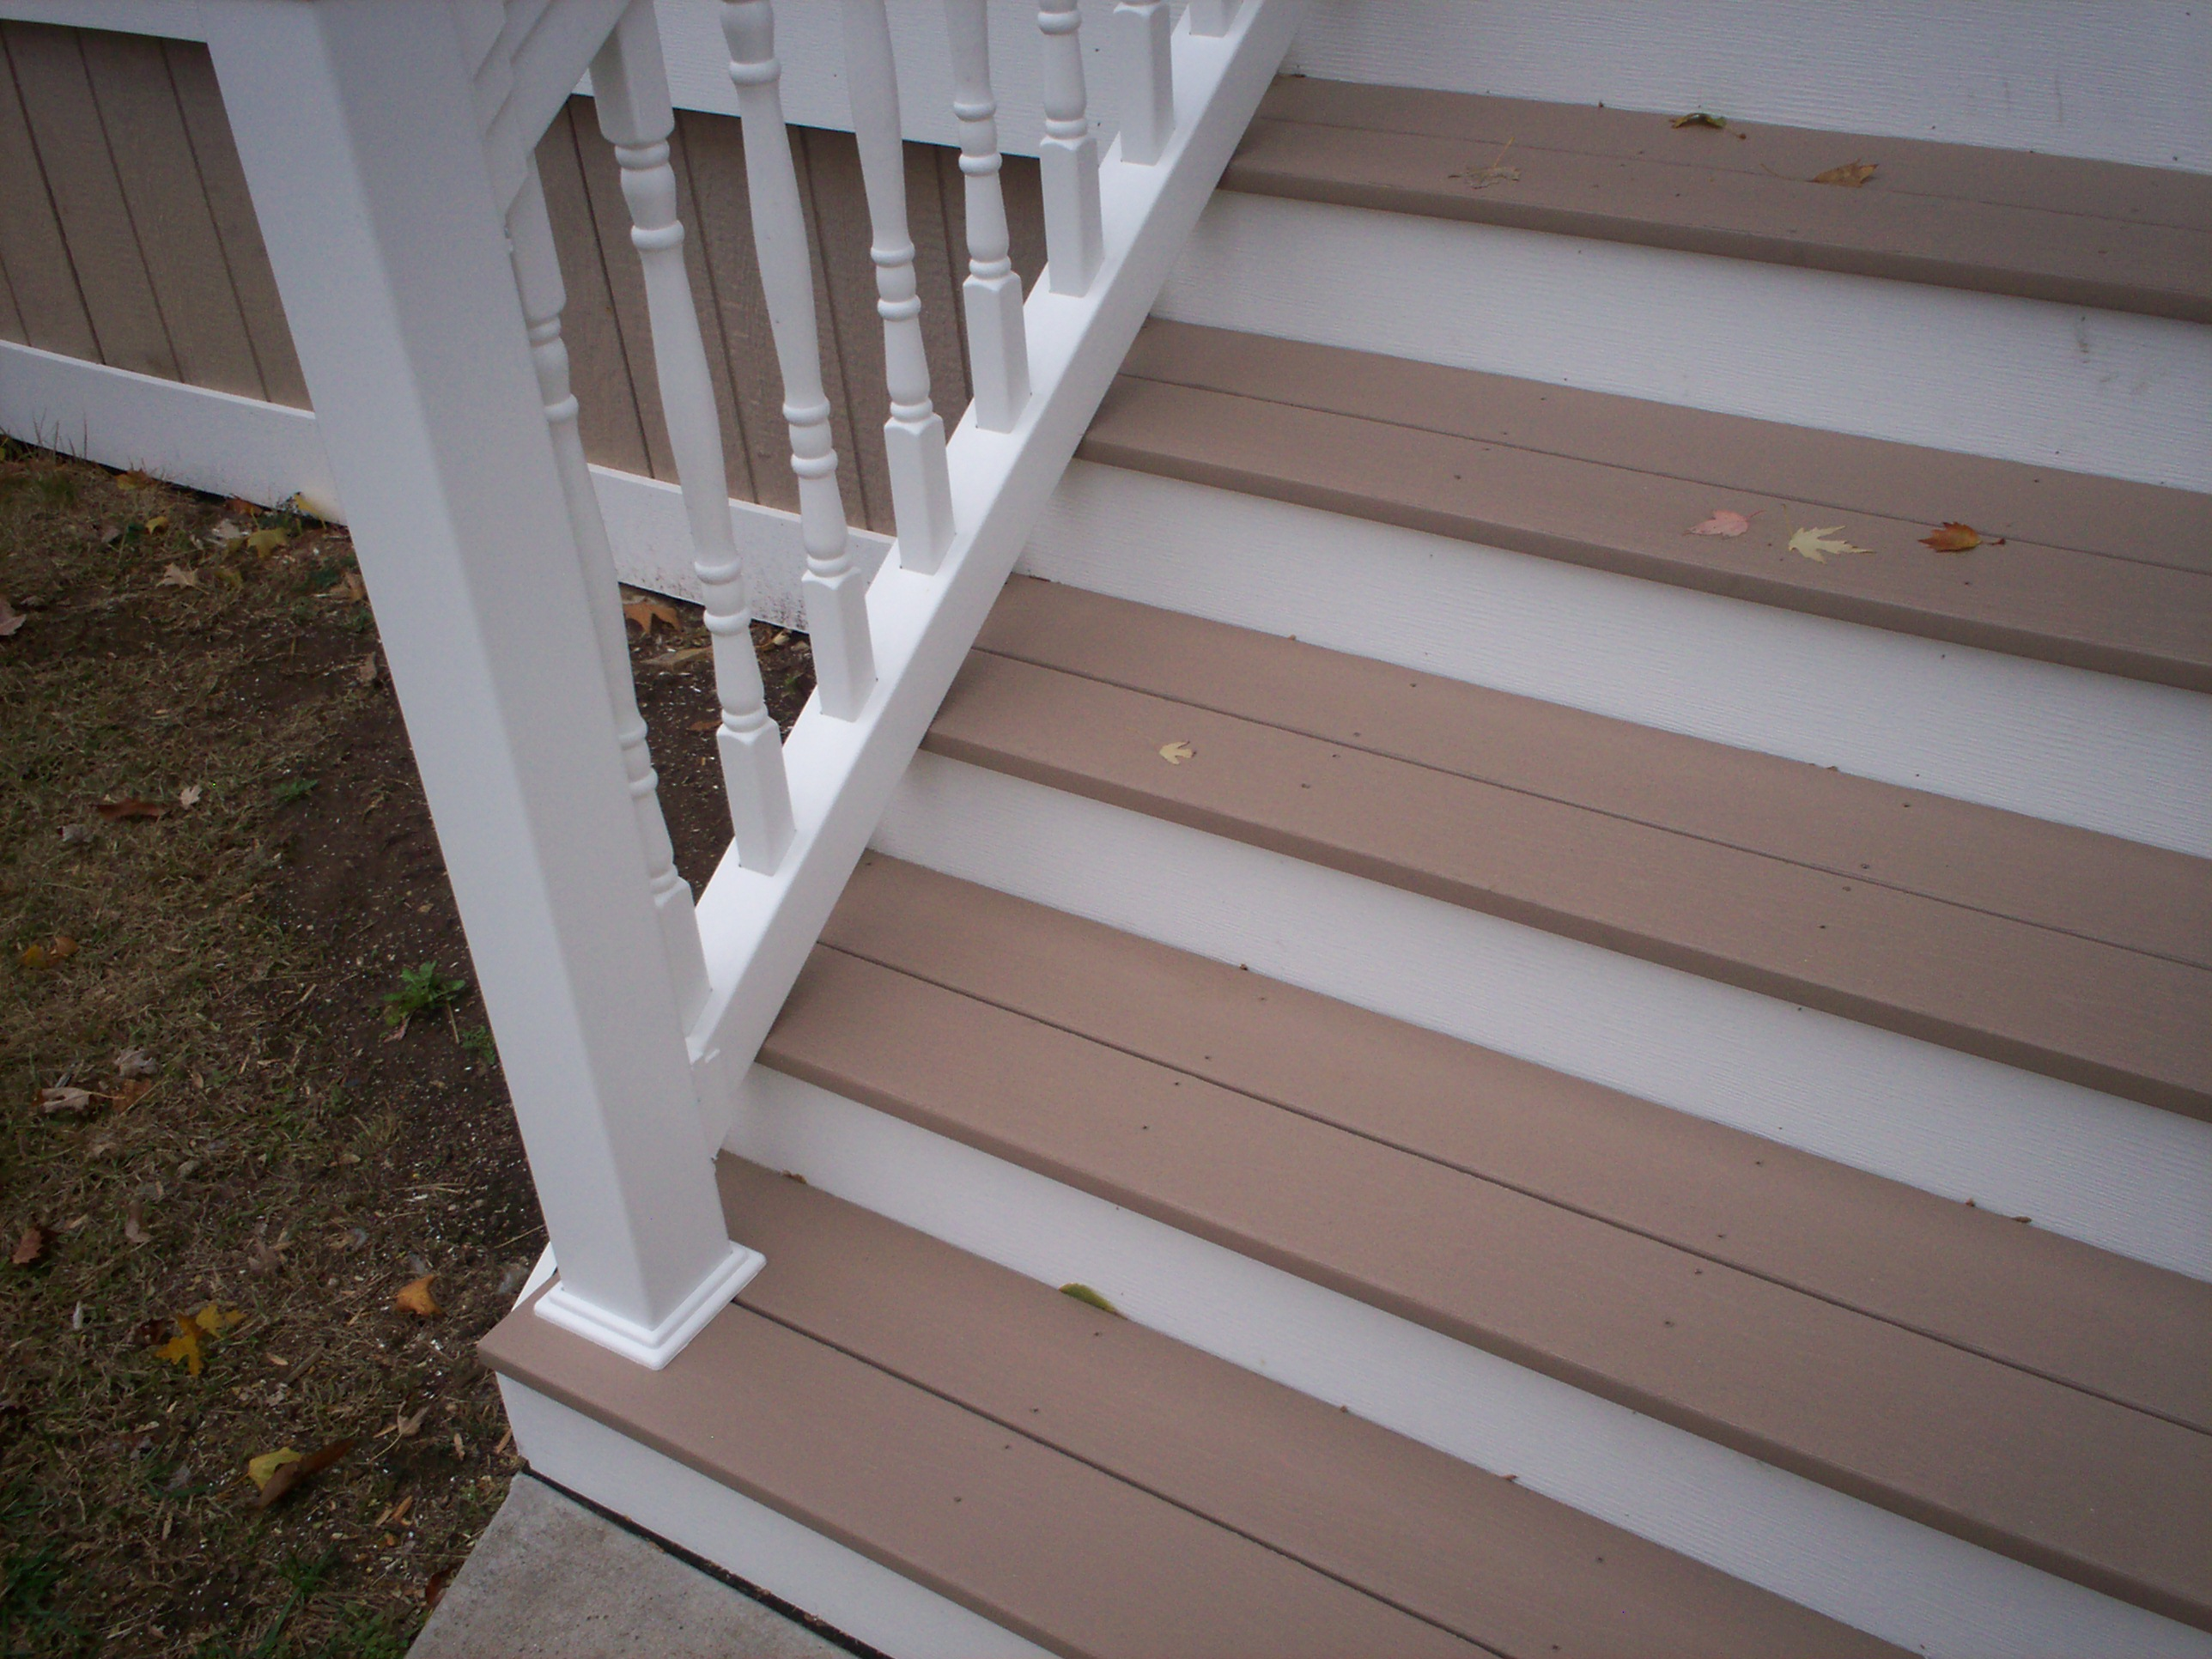 Azek Front Porch Stairs And Vinyl Railings With Columns In